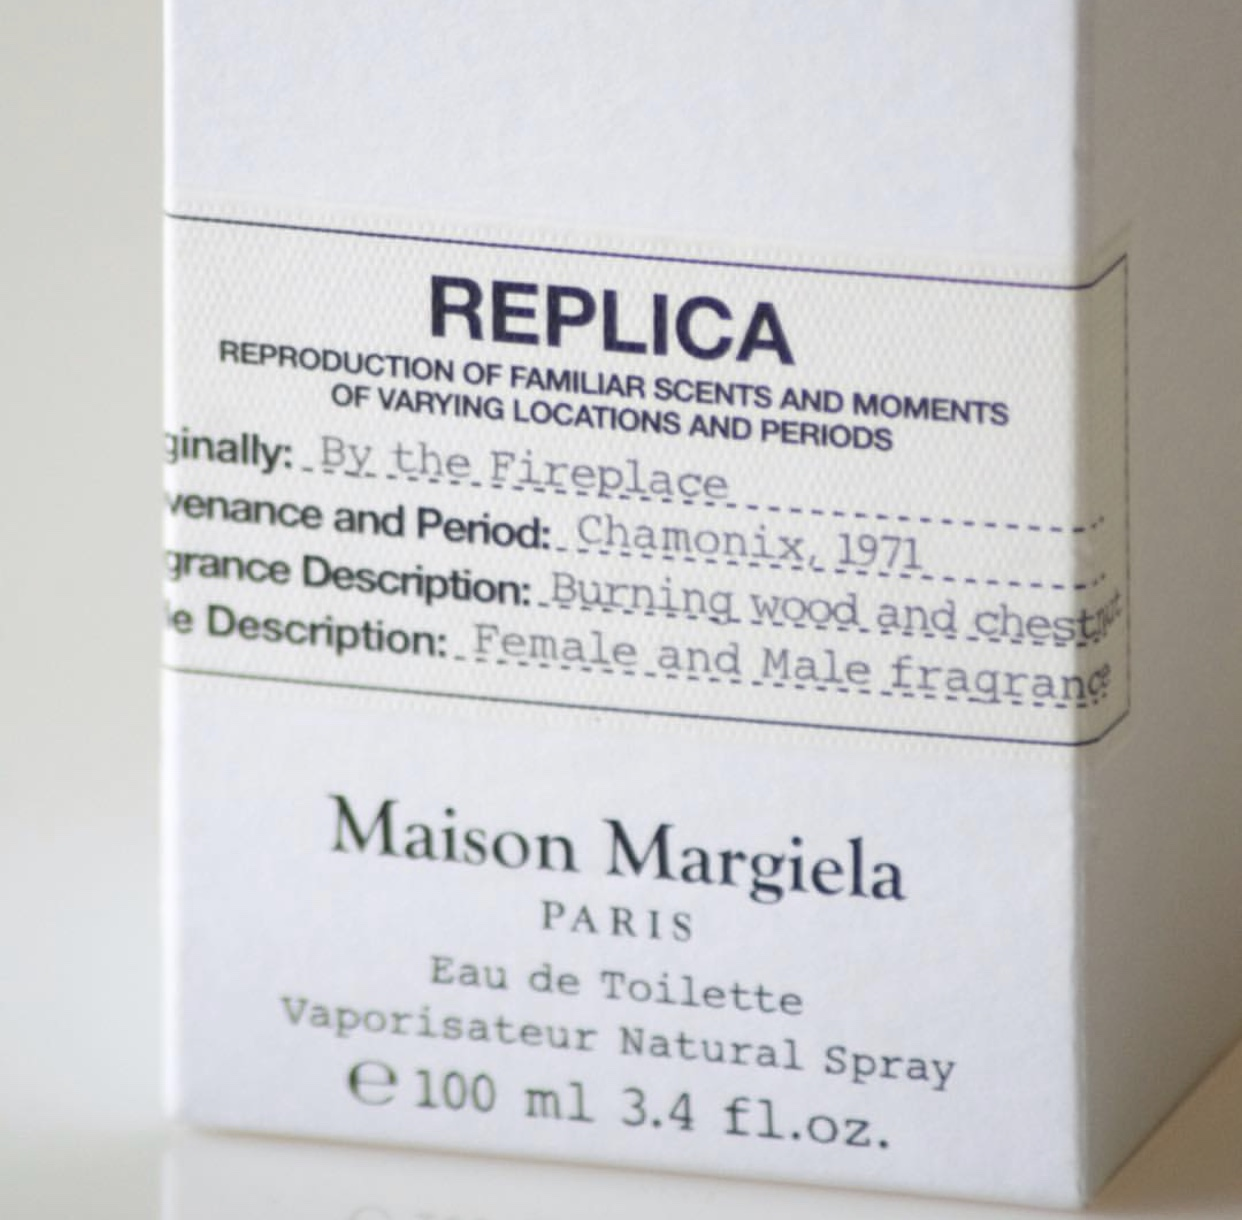 Maison Margiela Replica by the fireplace notino2